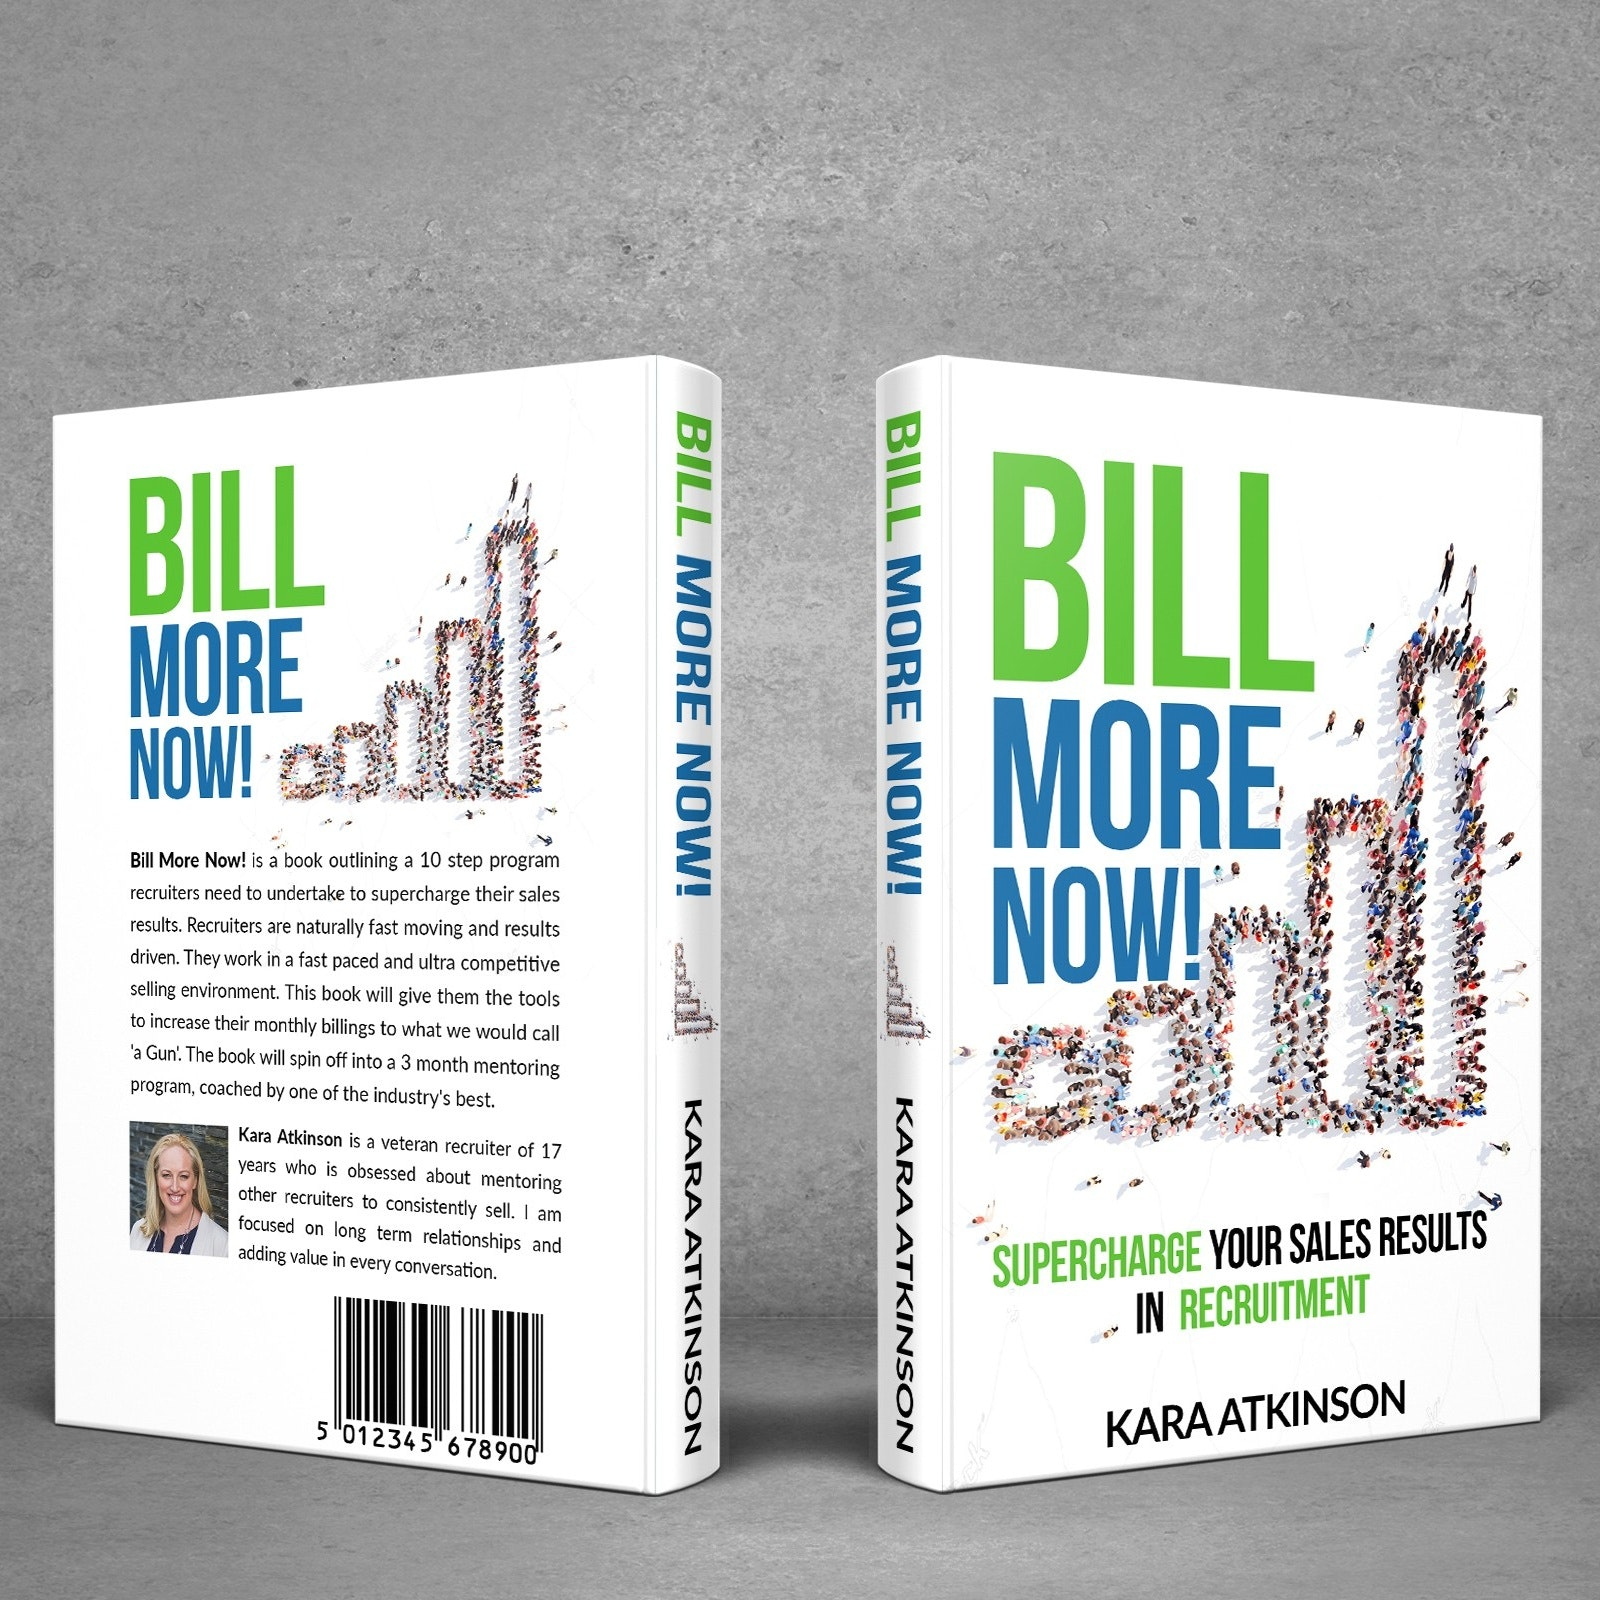 A corporate book cover design